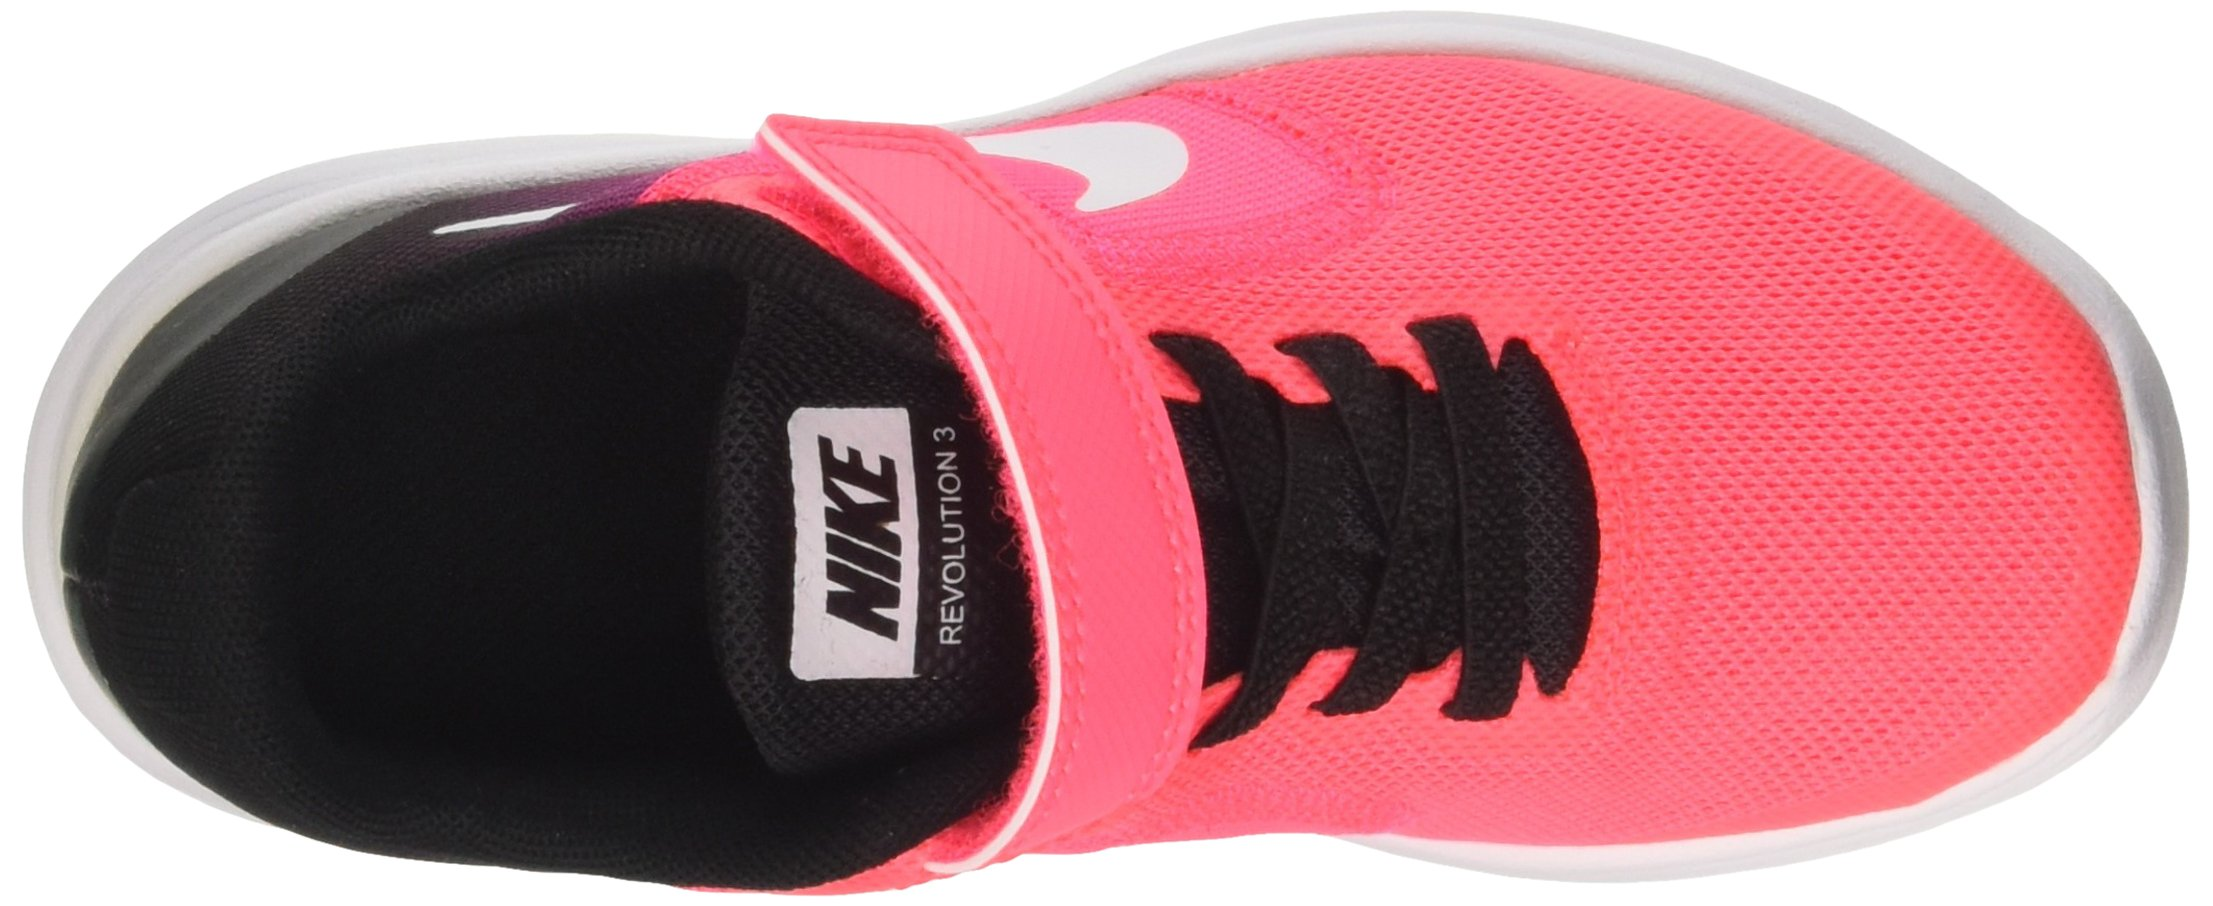 NIKE Kids' Revolution 3 (Psv) Running-Shoes, Black/White/Racer Pink/Black, 1 M US Little Kid by Nike (Image #7)